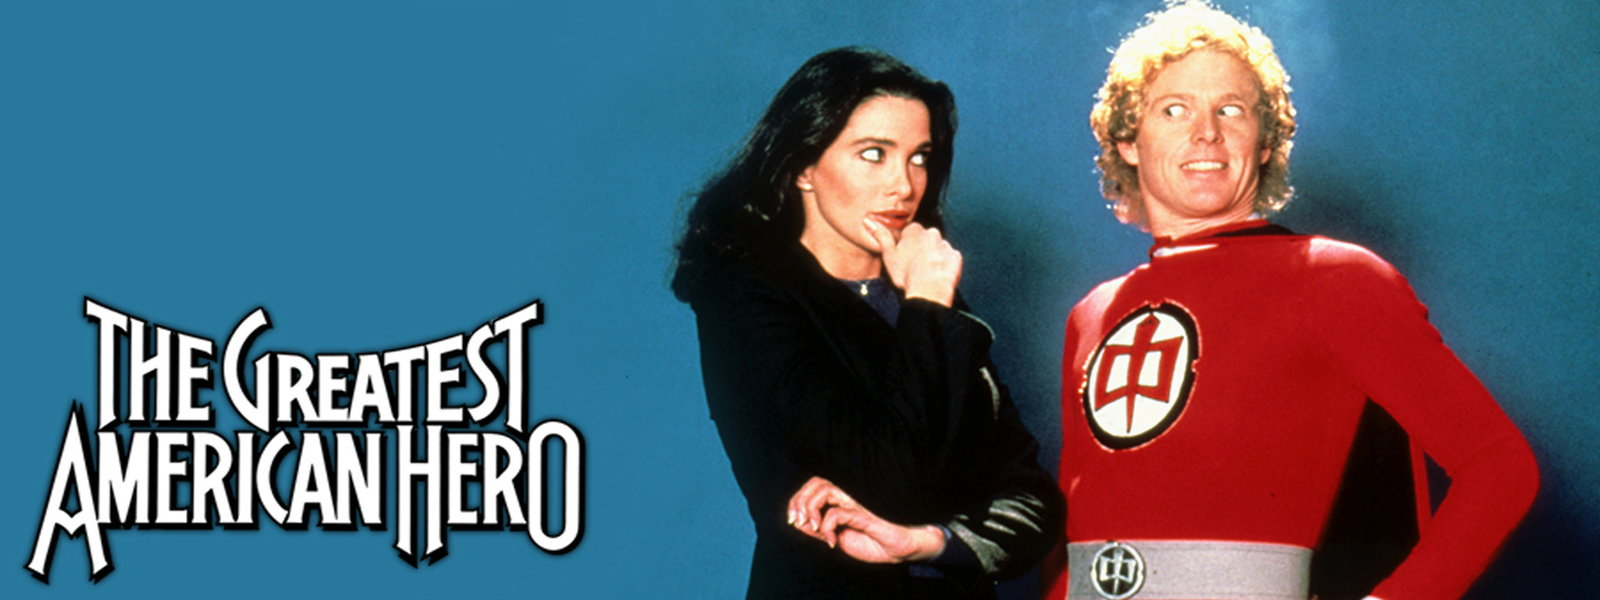 80s TV Show The Greatest American Hero Gets A Remake